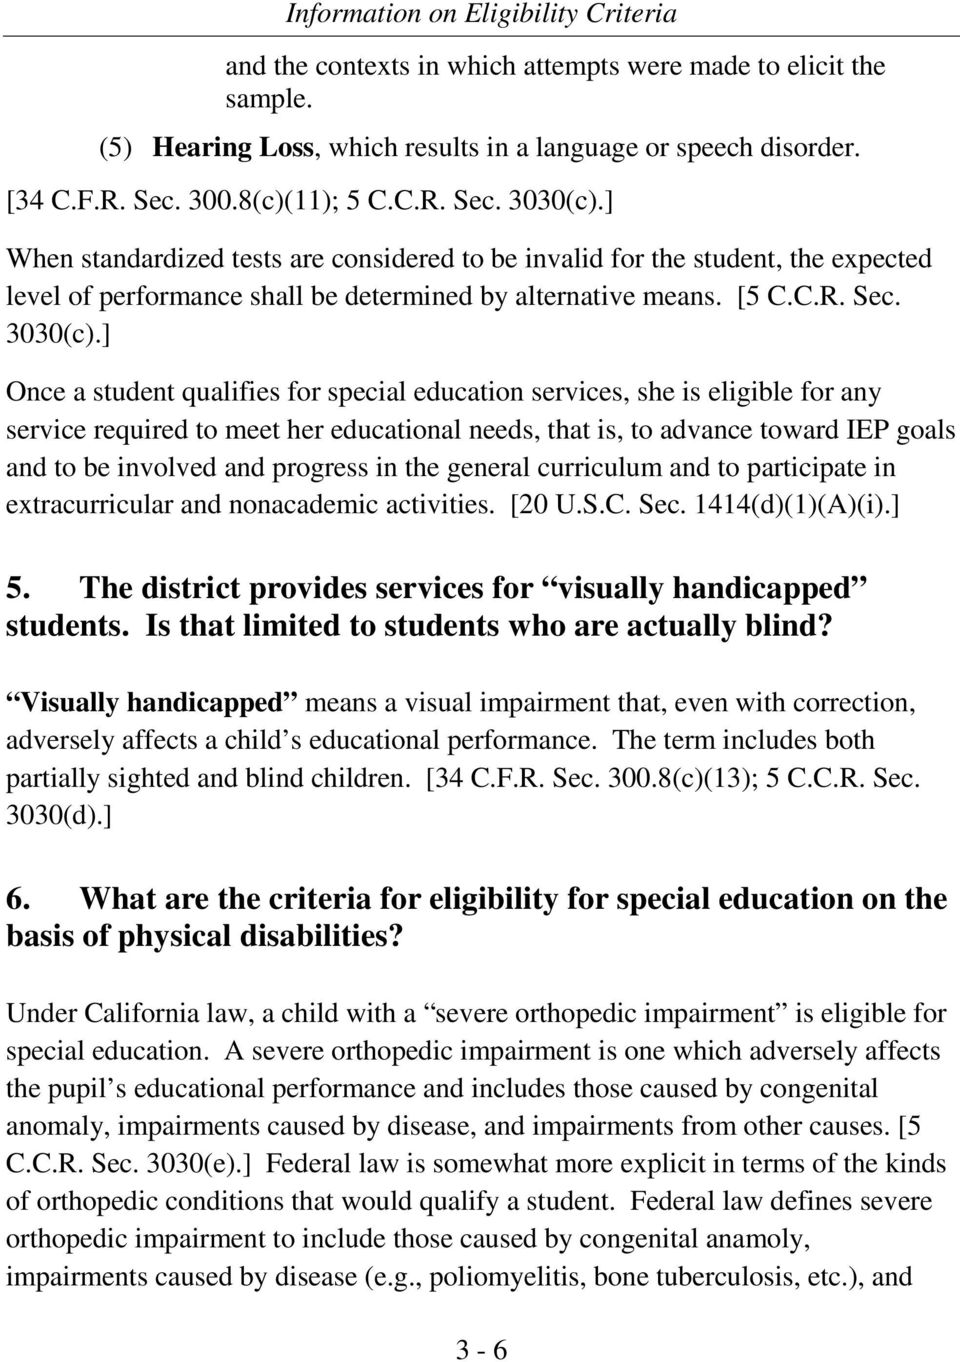 ] Once a student qualifies for special education services, she is eligible for any service required to meet her educational needs, that is, to advance toward IEP goals and to be involved and progress